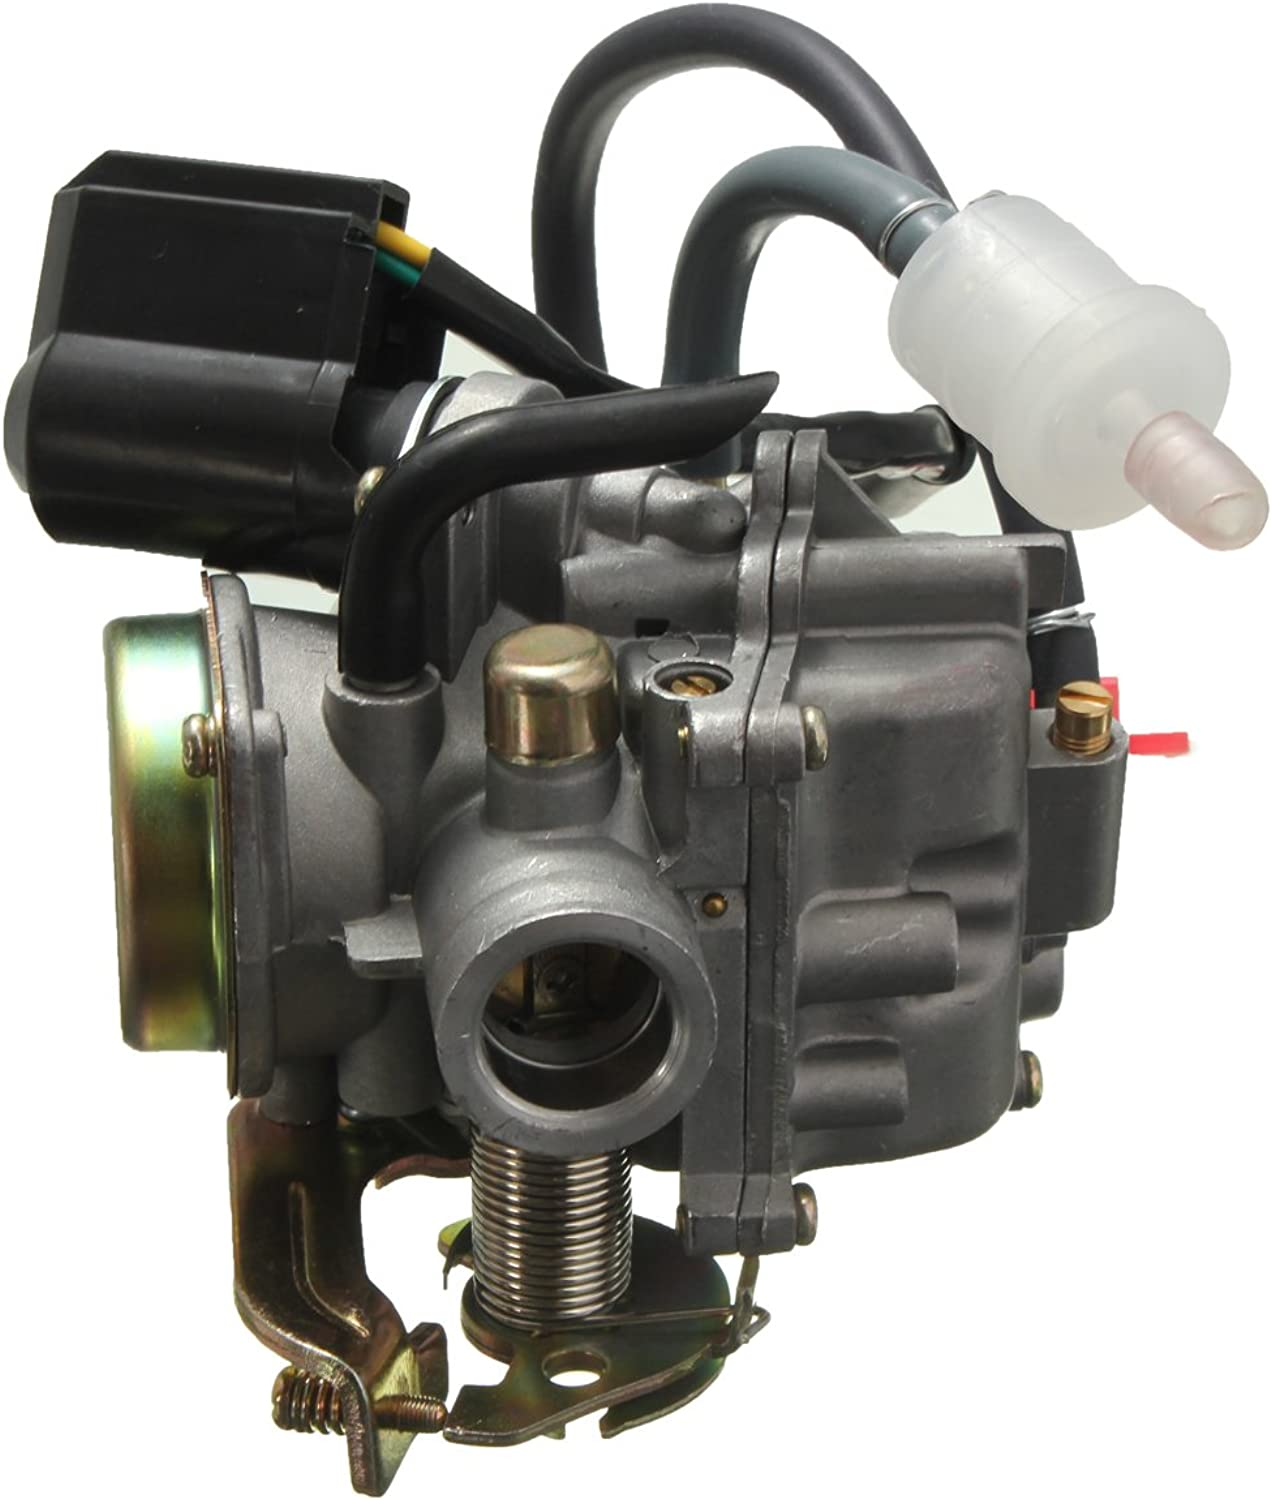 US Warehouse  Motorcycle Carburetor GY6 50cc Scooter Moped for Qingqi QM50QT Vento Baotian